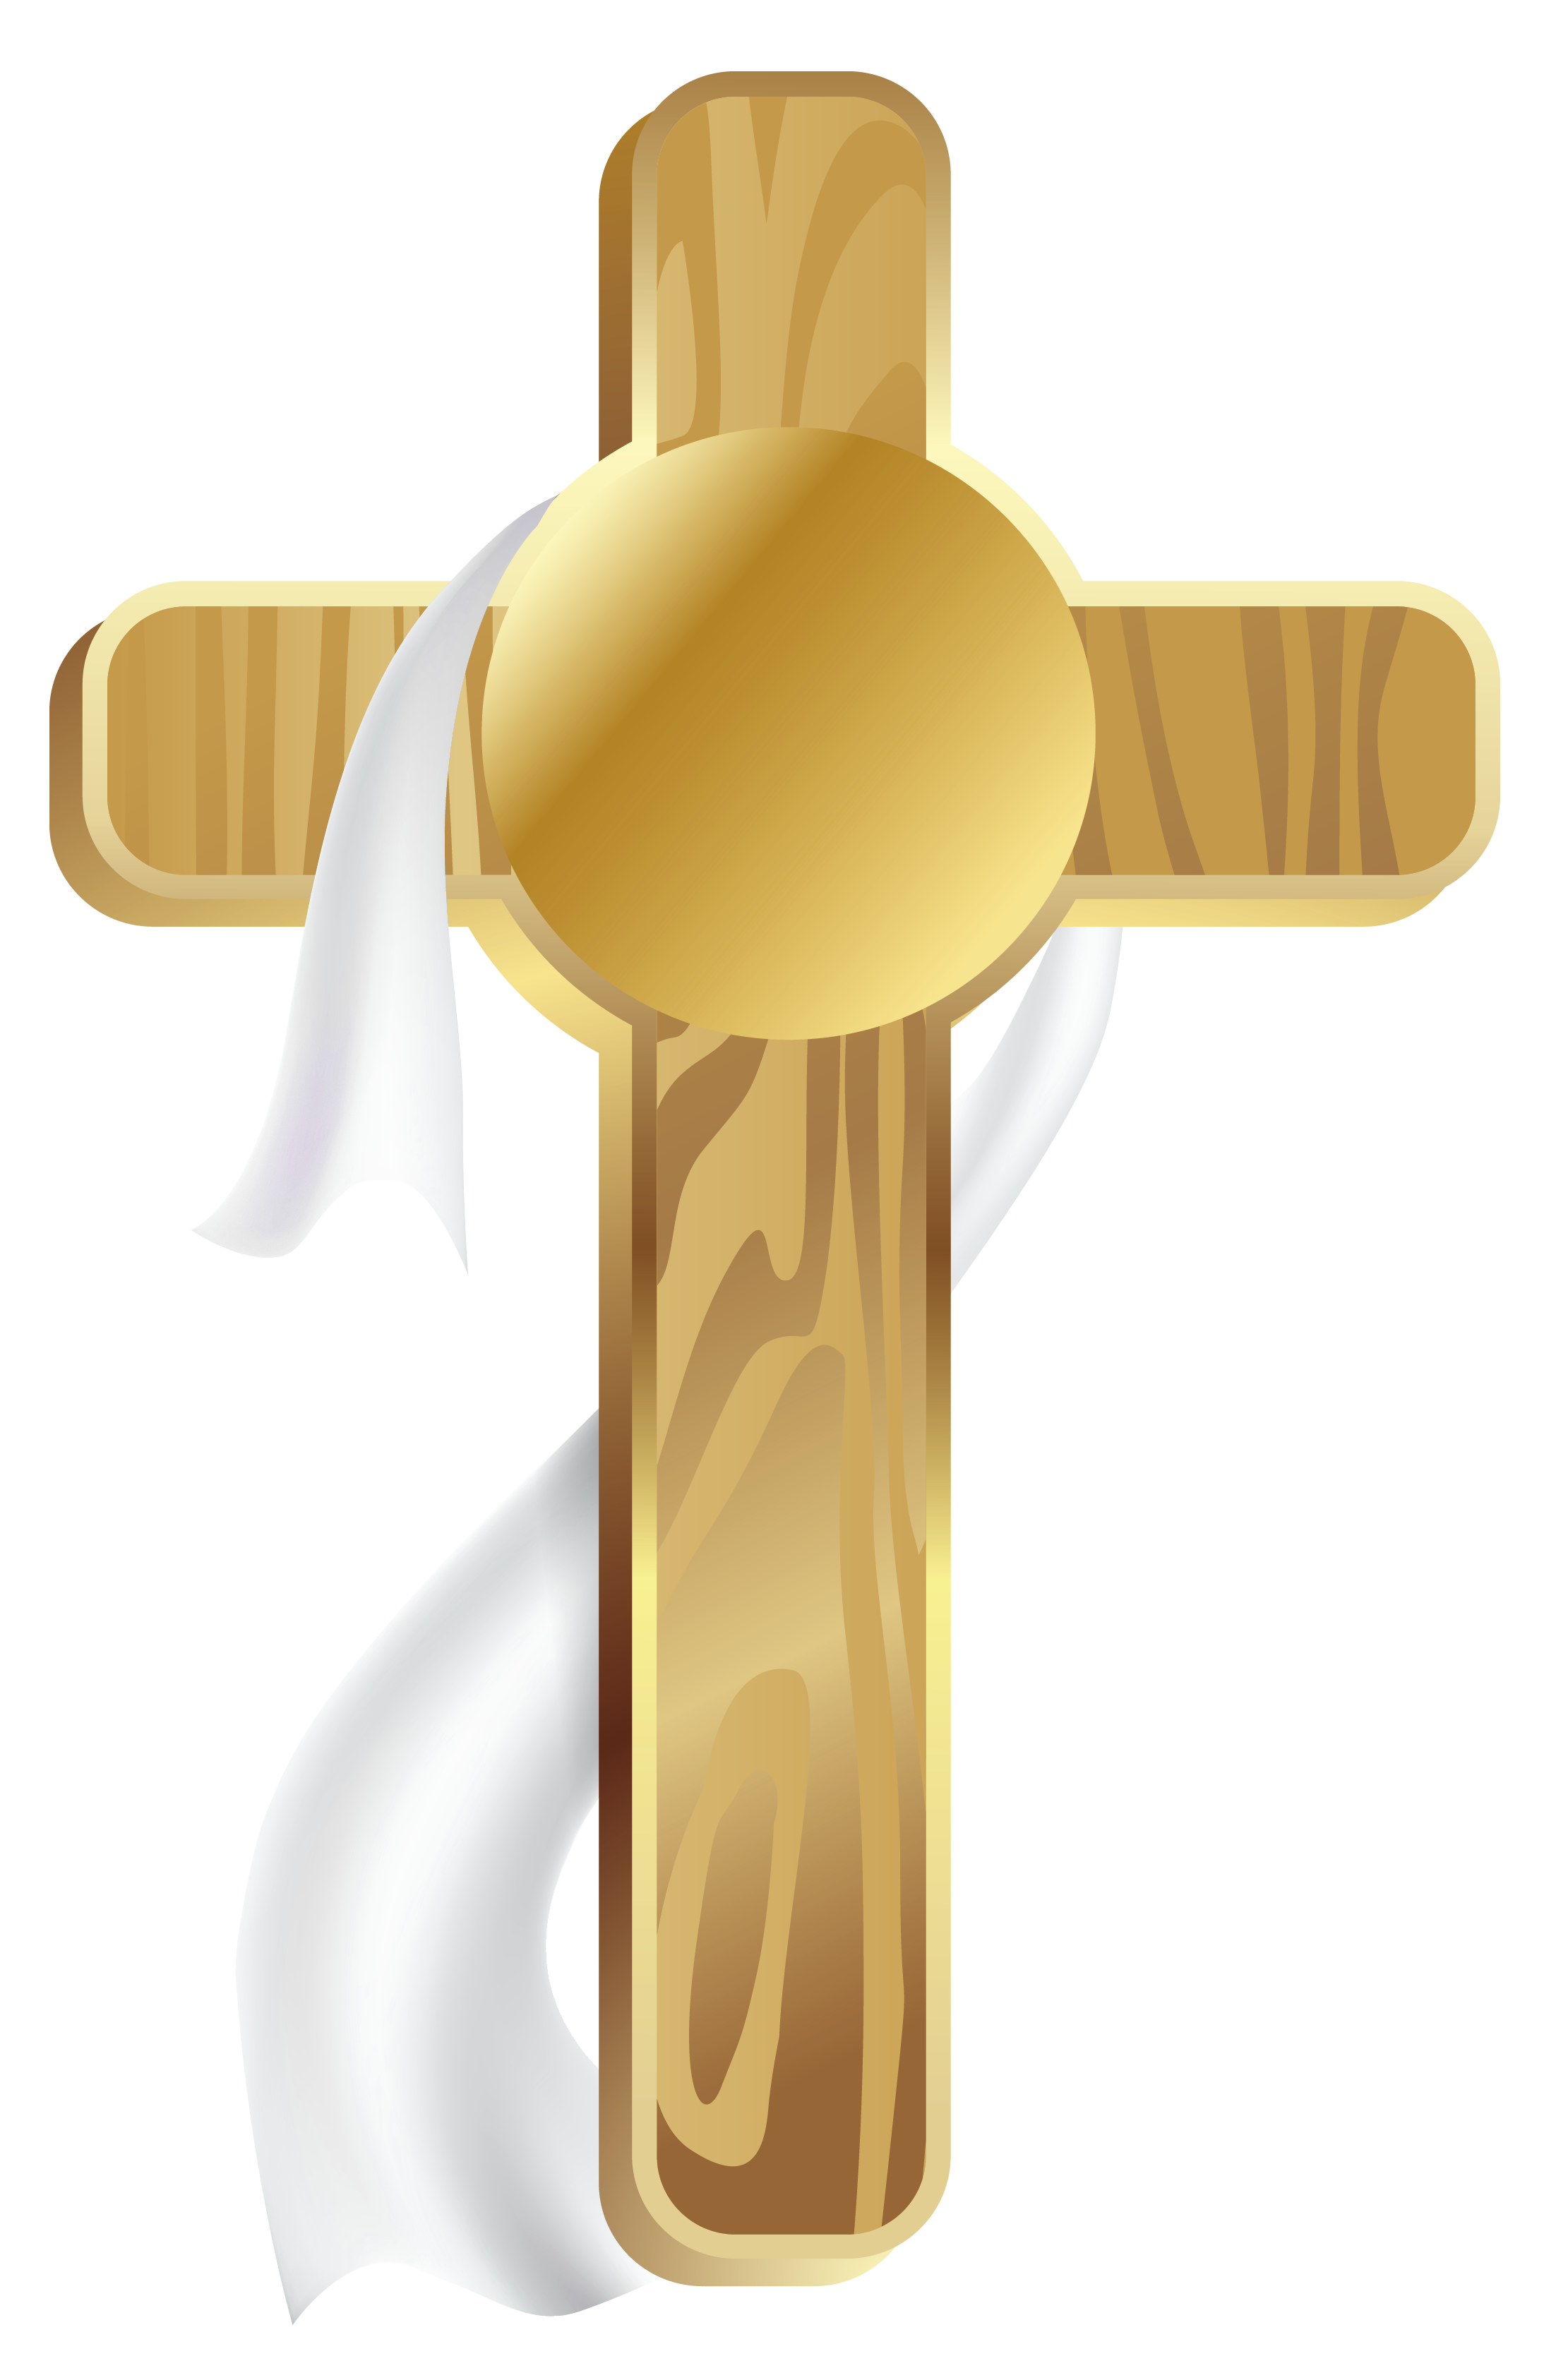 Cross clipart wooden png freeuse library Wooden Cross PNG Picture Clipart | Gallery Yopriceville - High ... png freeuse library